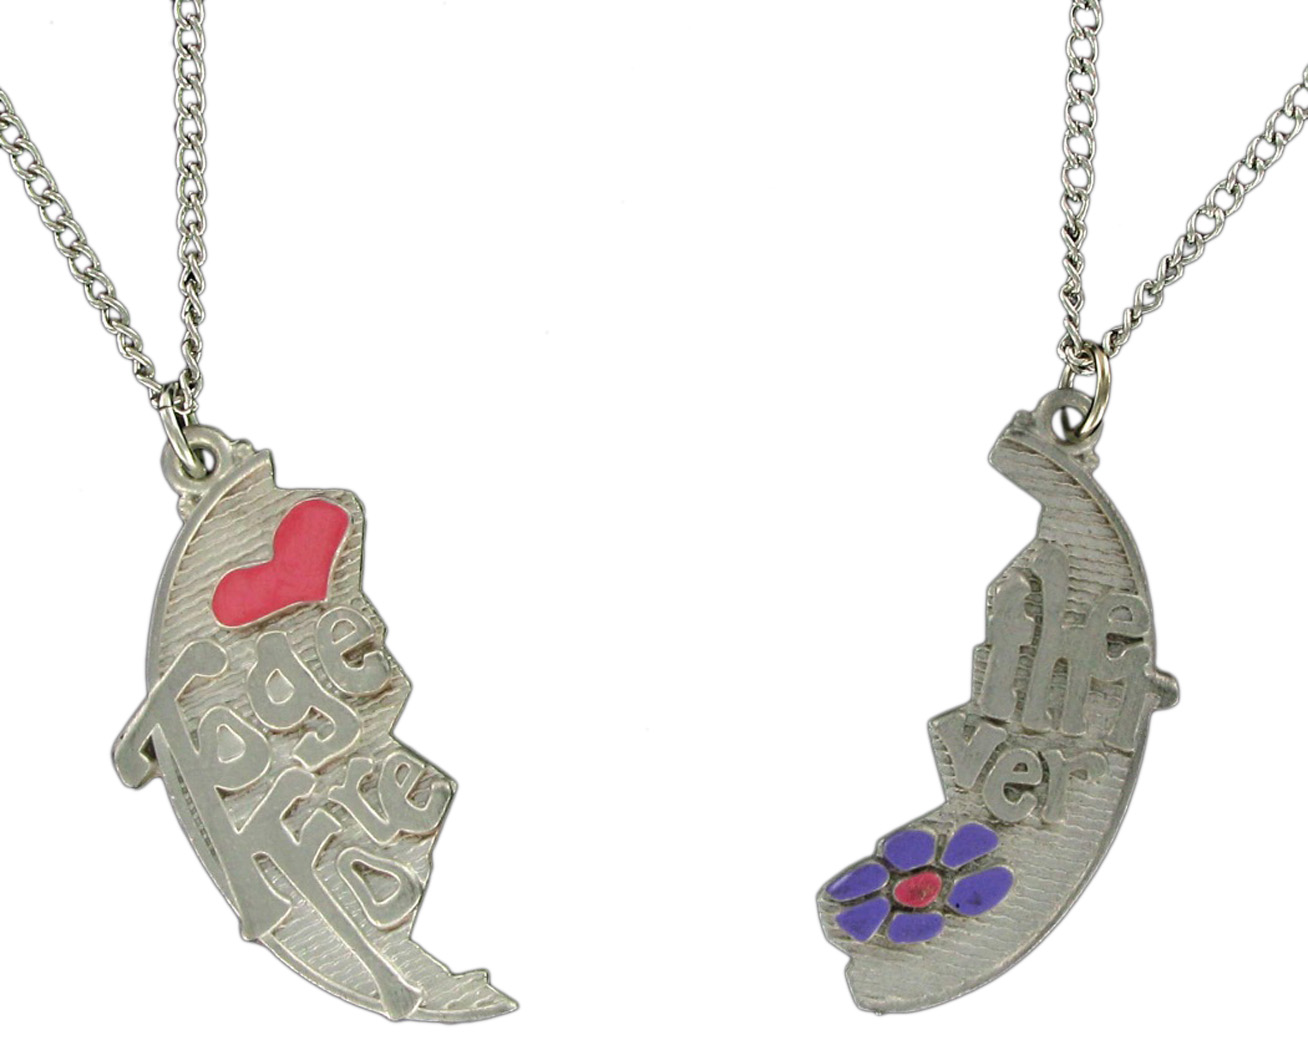 Pendant Bff Necklace Set Best Friends Together Forever Thumbnail 3